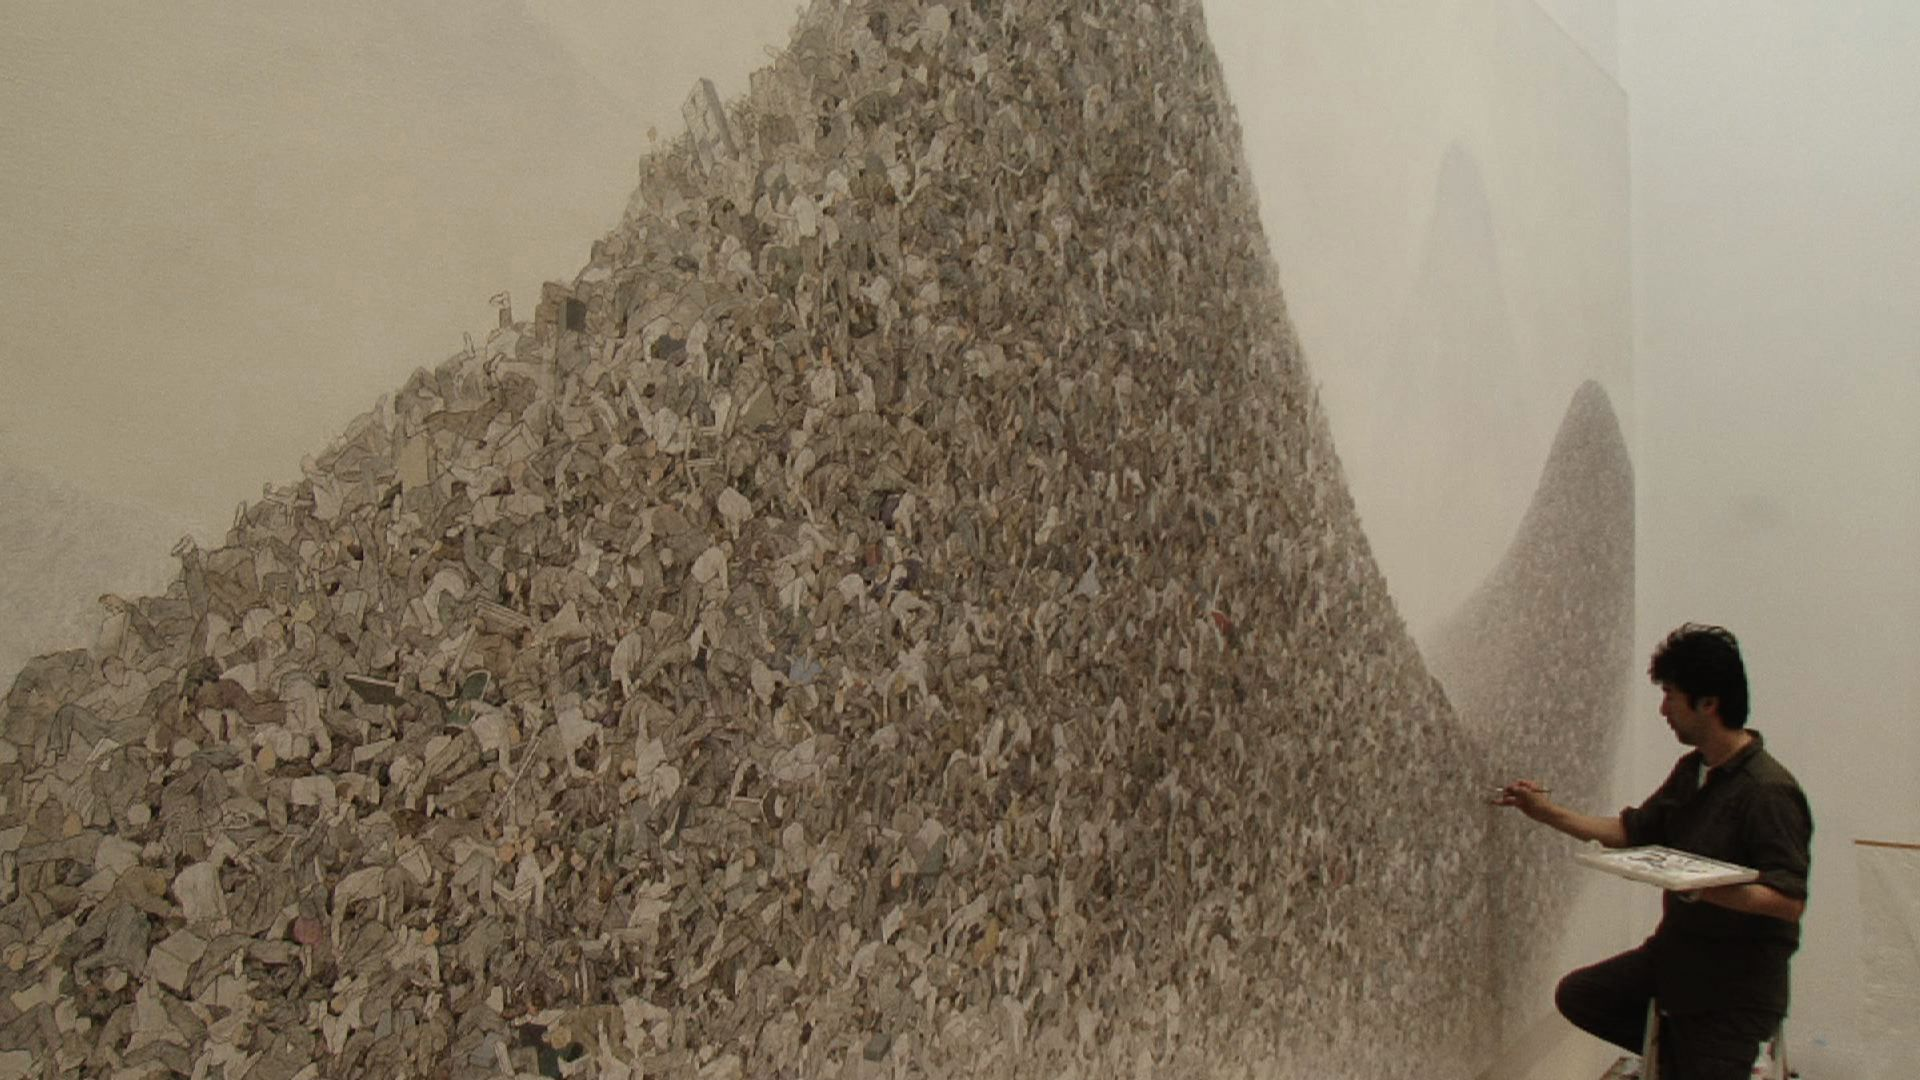 Aida Makoto work in progress is the depiction of a mountain of businessmen's bodies piled high and rising out of the mist.